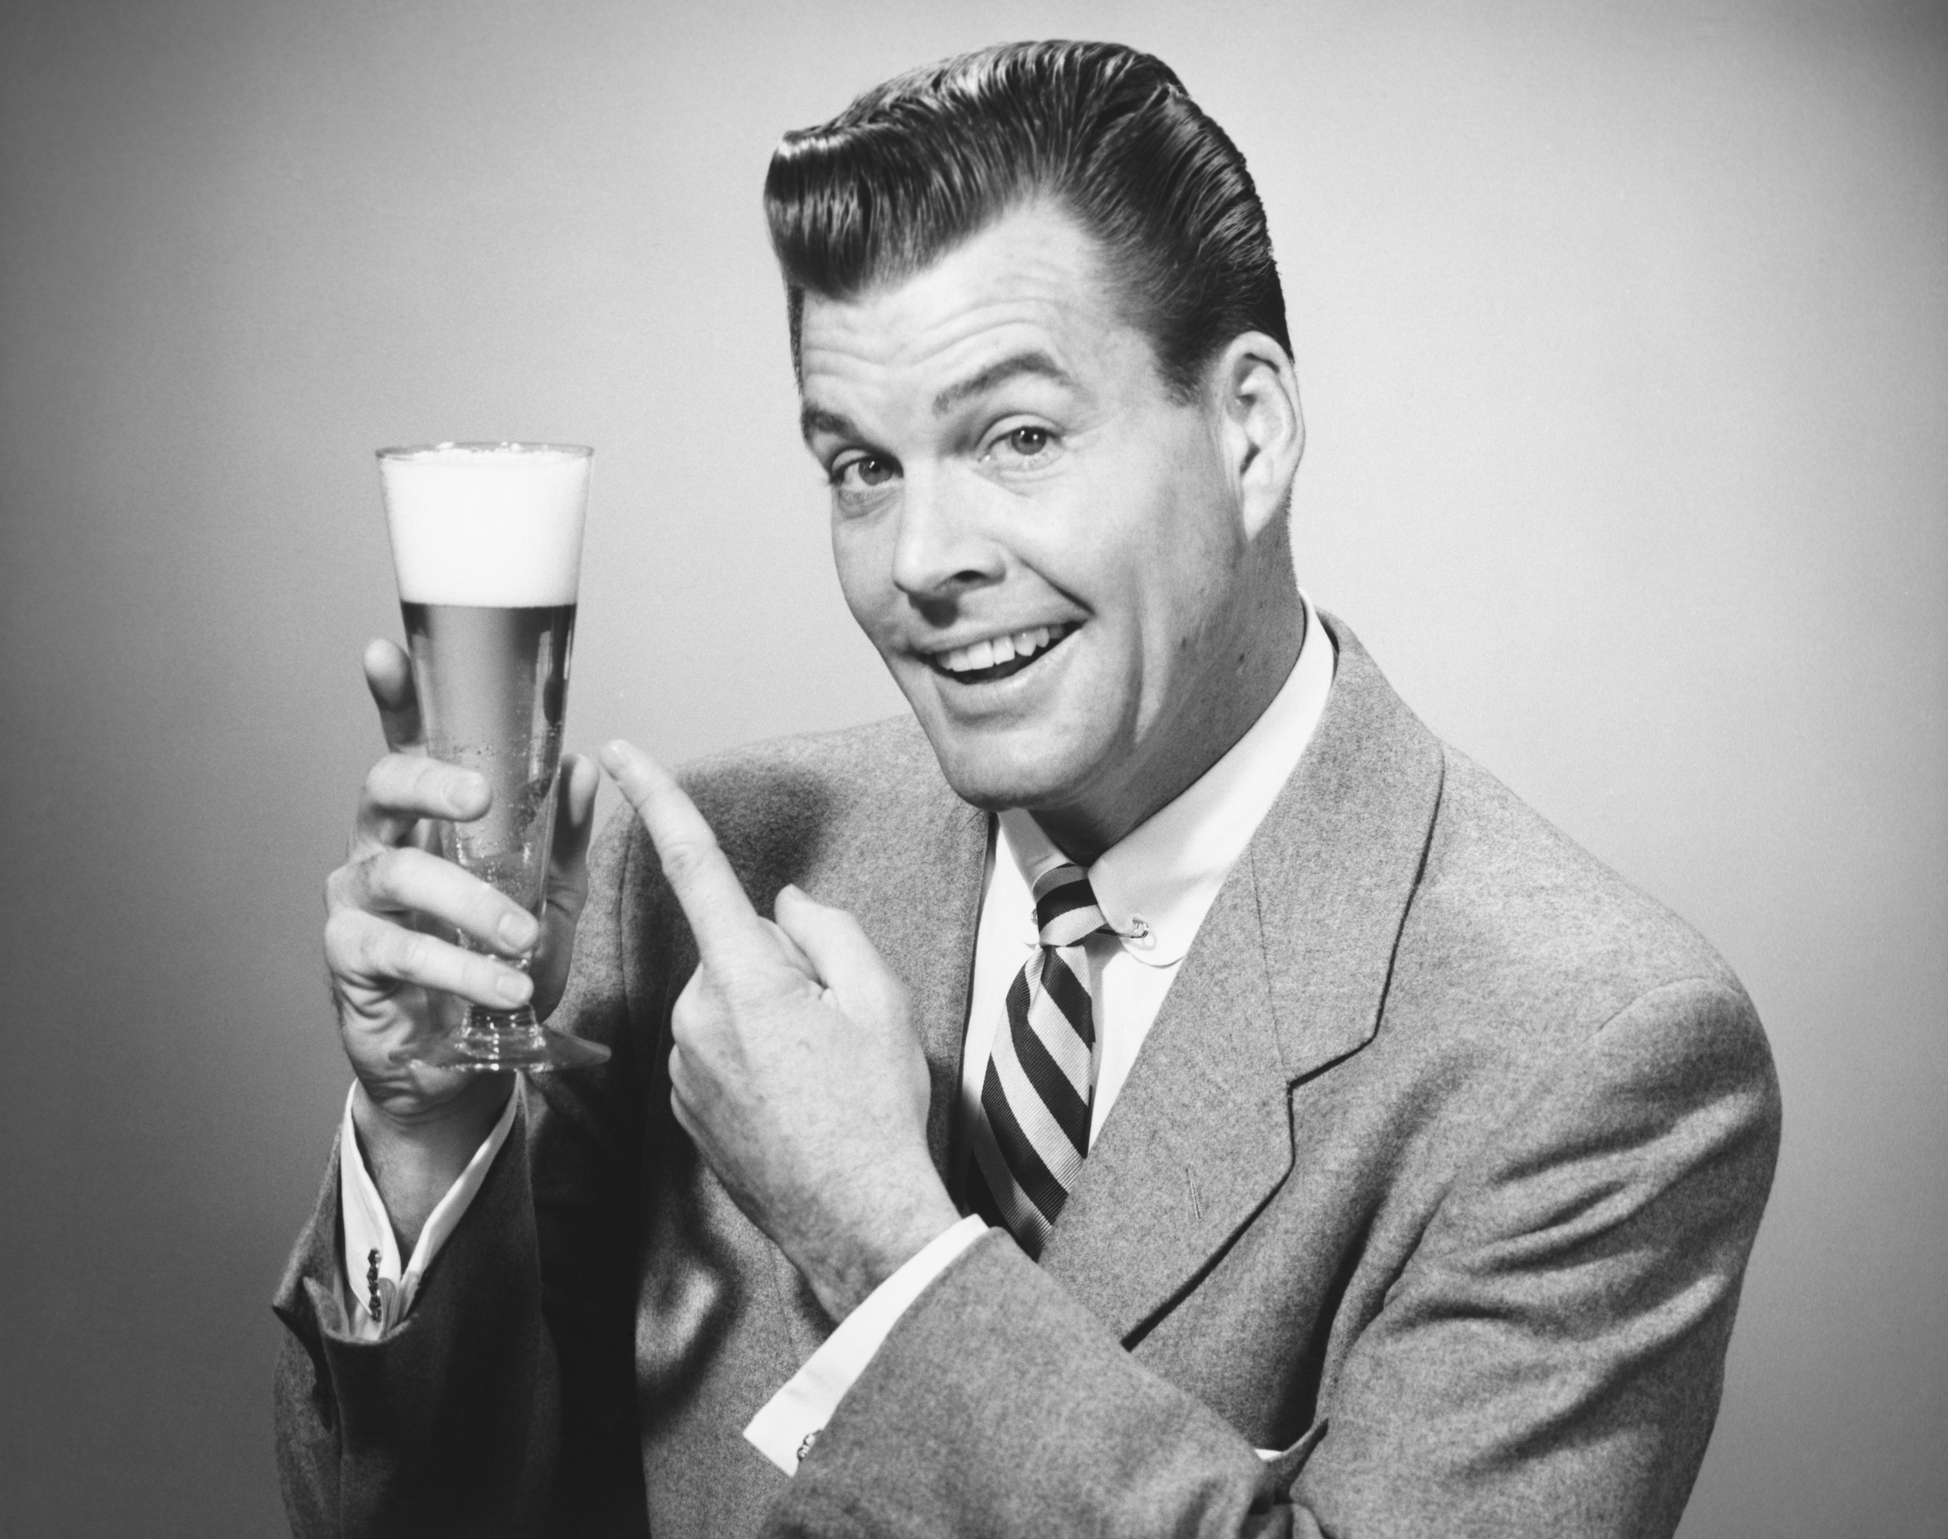 man-holding-a-beer-in-a-black-and-white-image